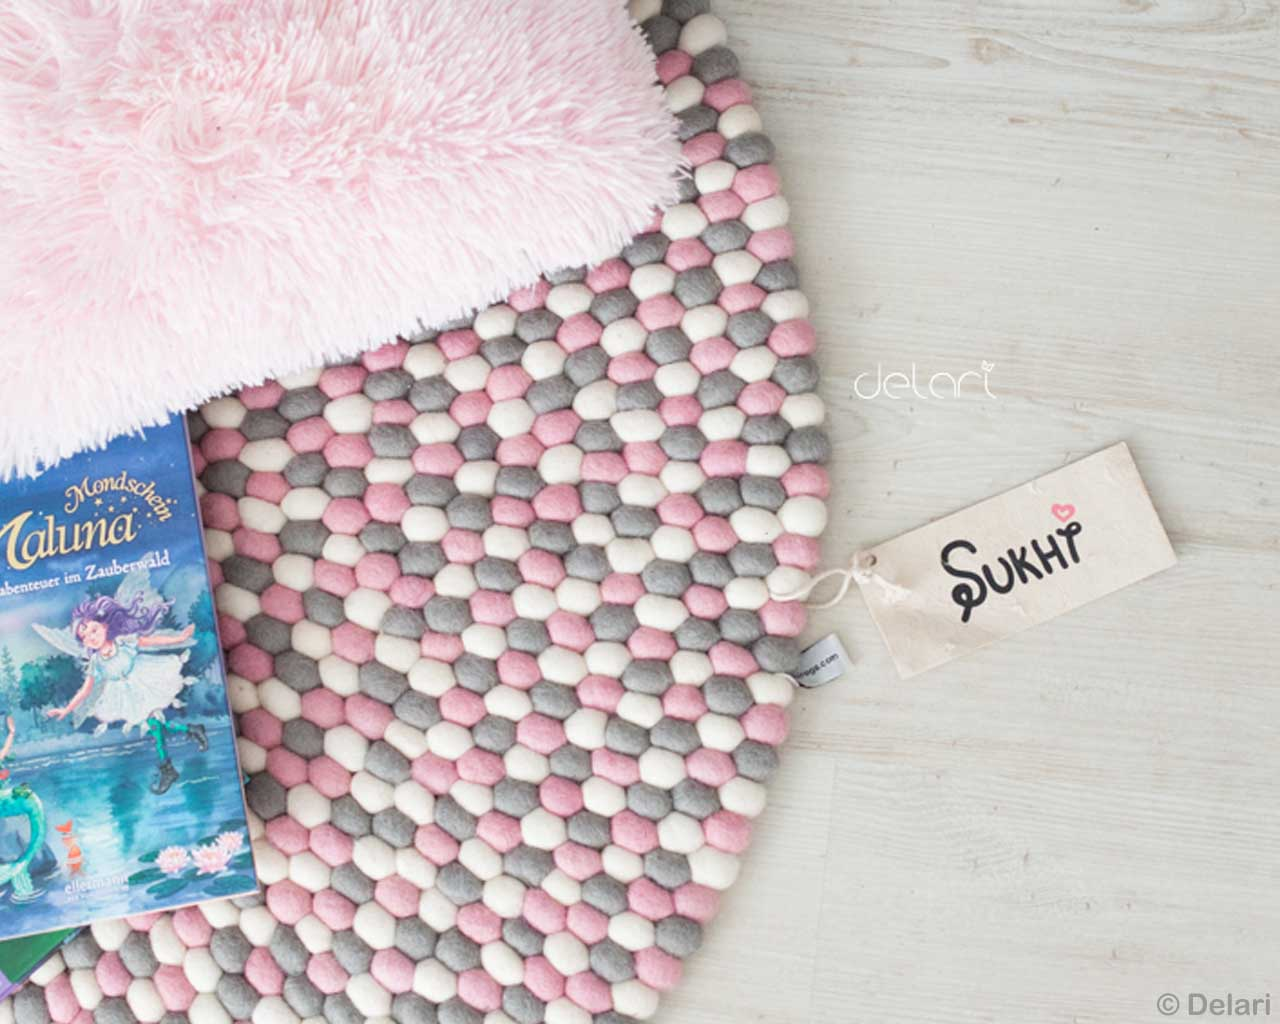 fluffy pillow and book designer carpets and rugs